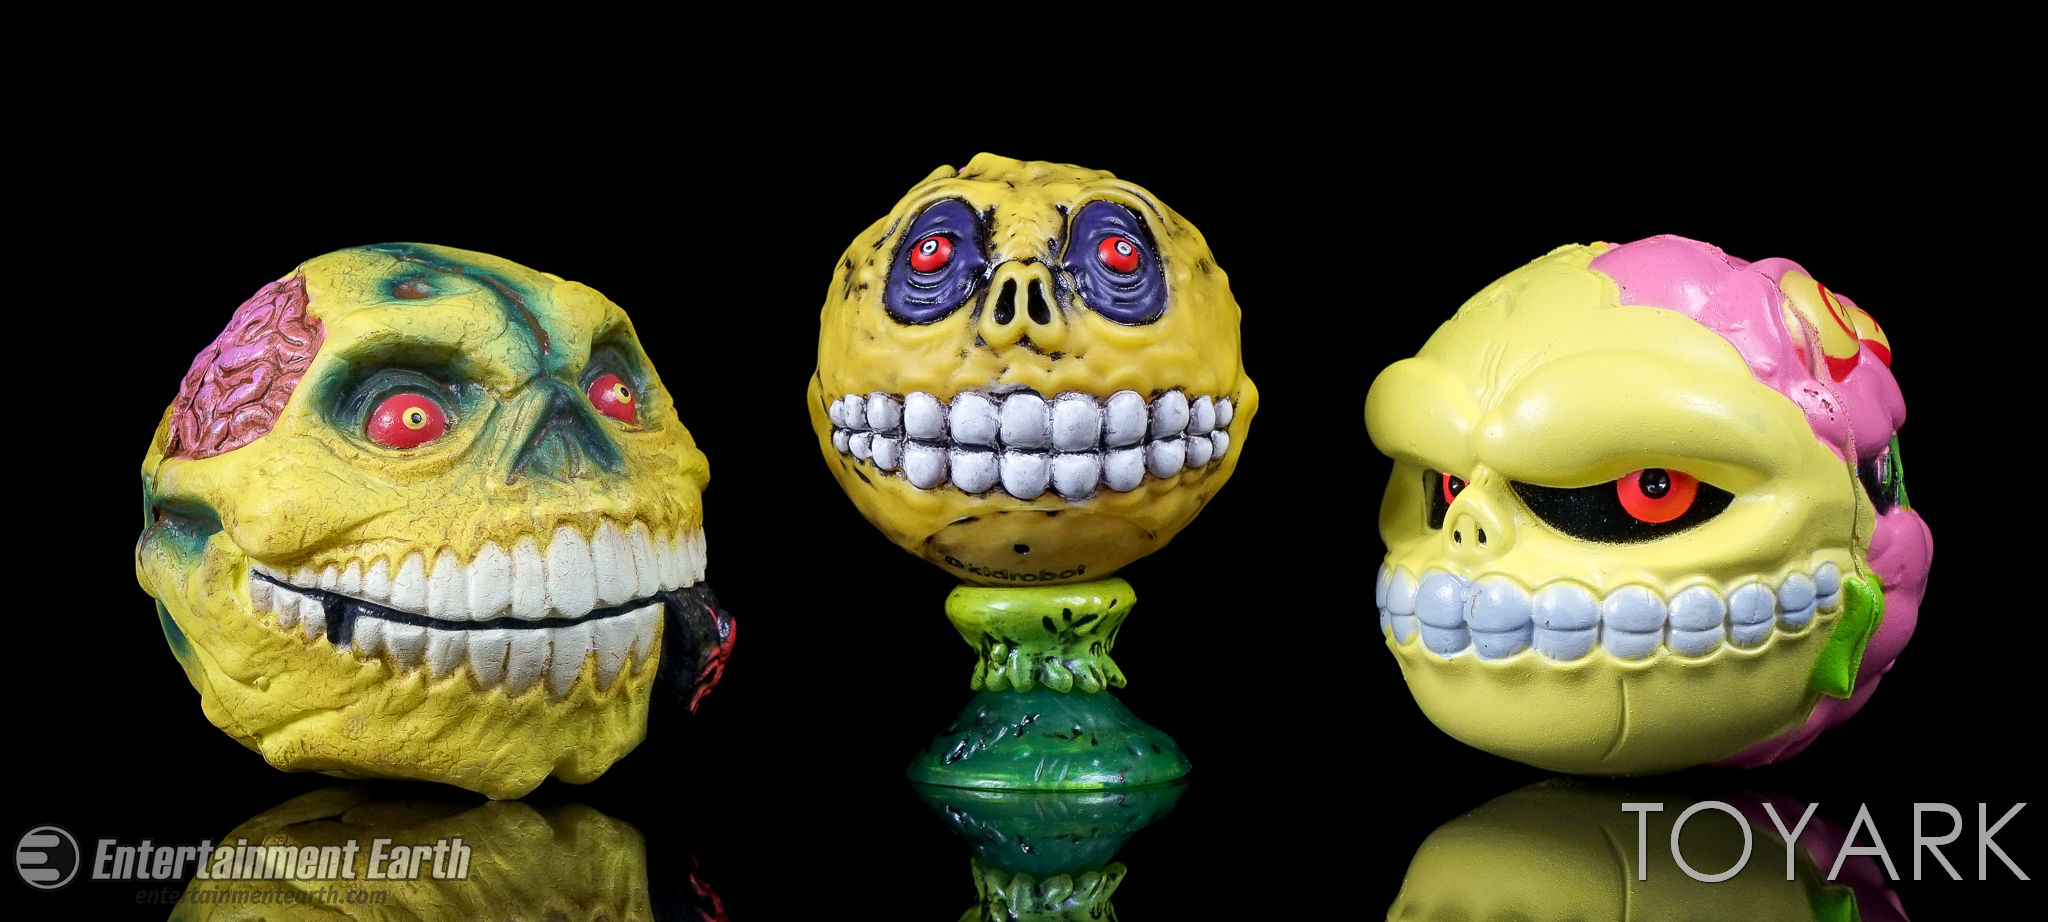 http://news.toyark.com/wp-content/uploads/sites/4/2017/02/Kidrobot-Madballs-Blind-Box-065.jpg